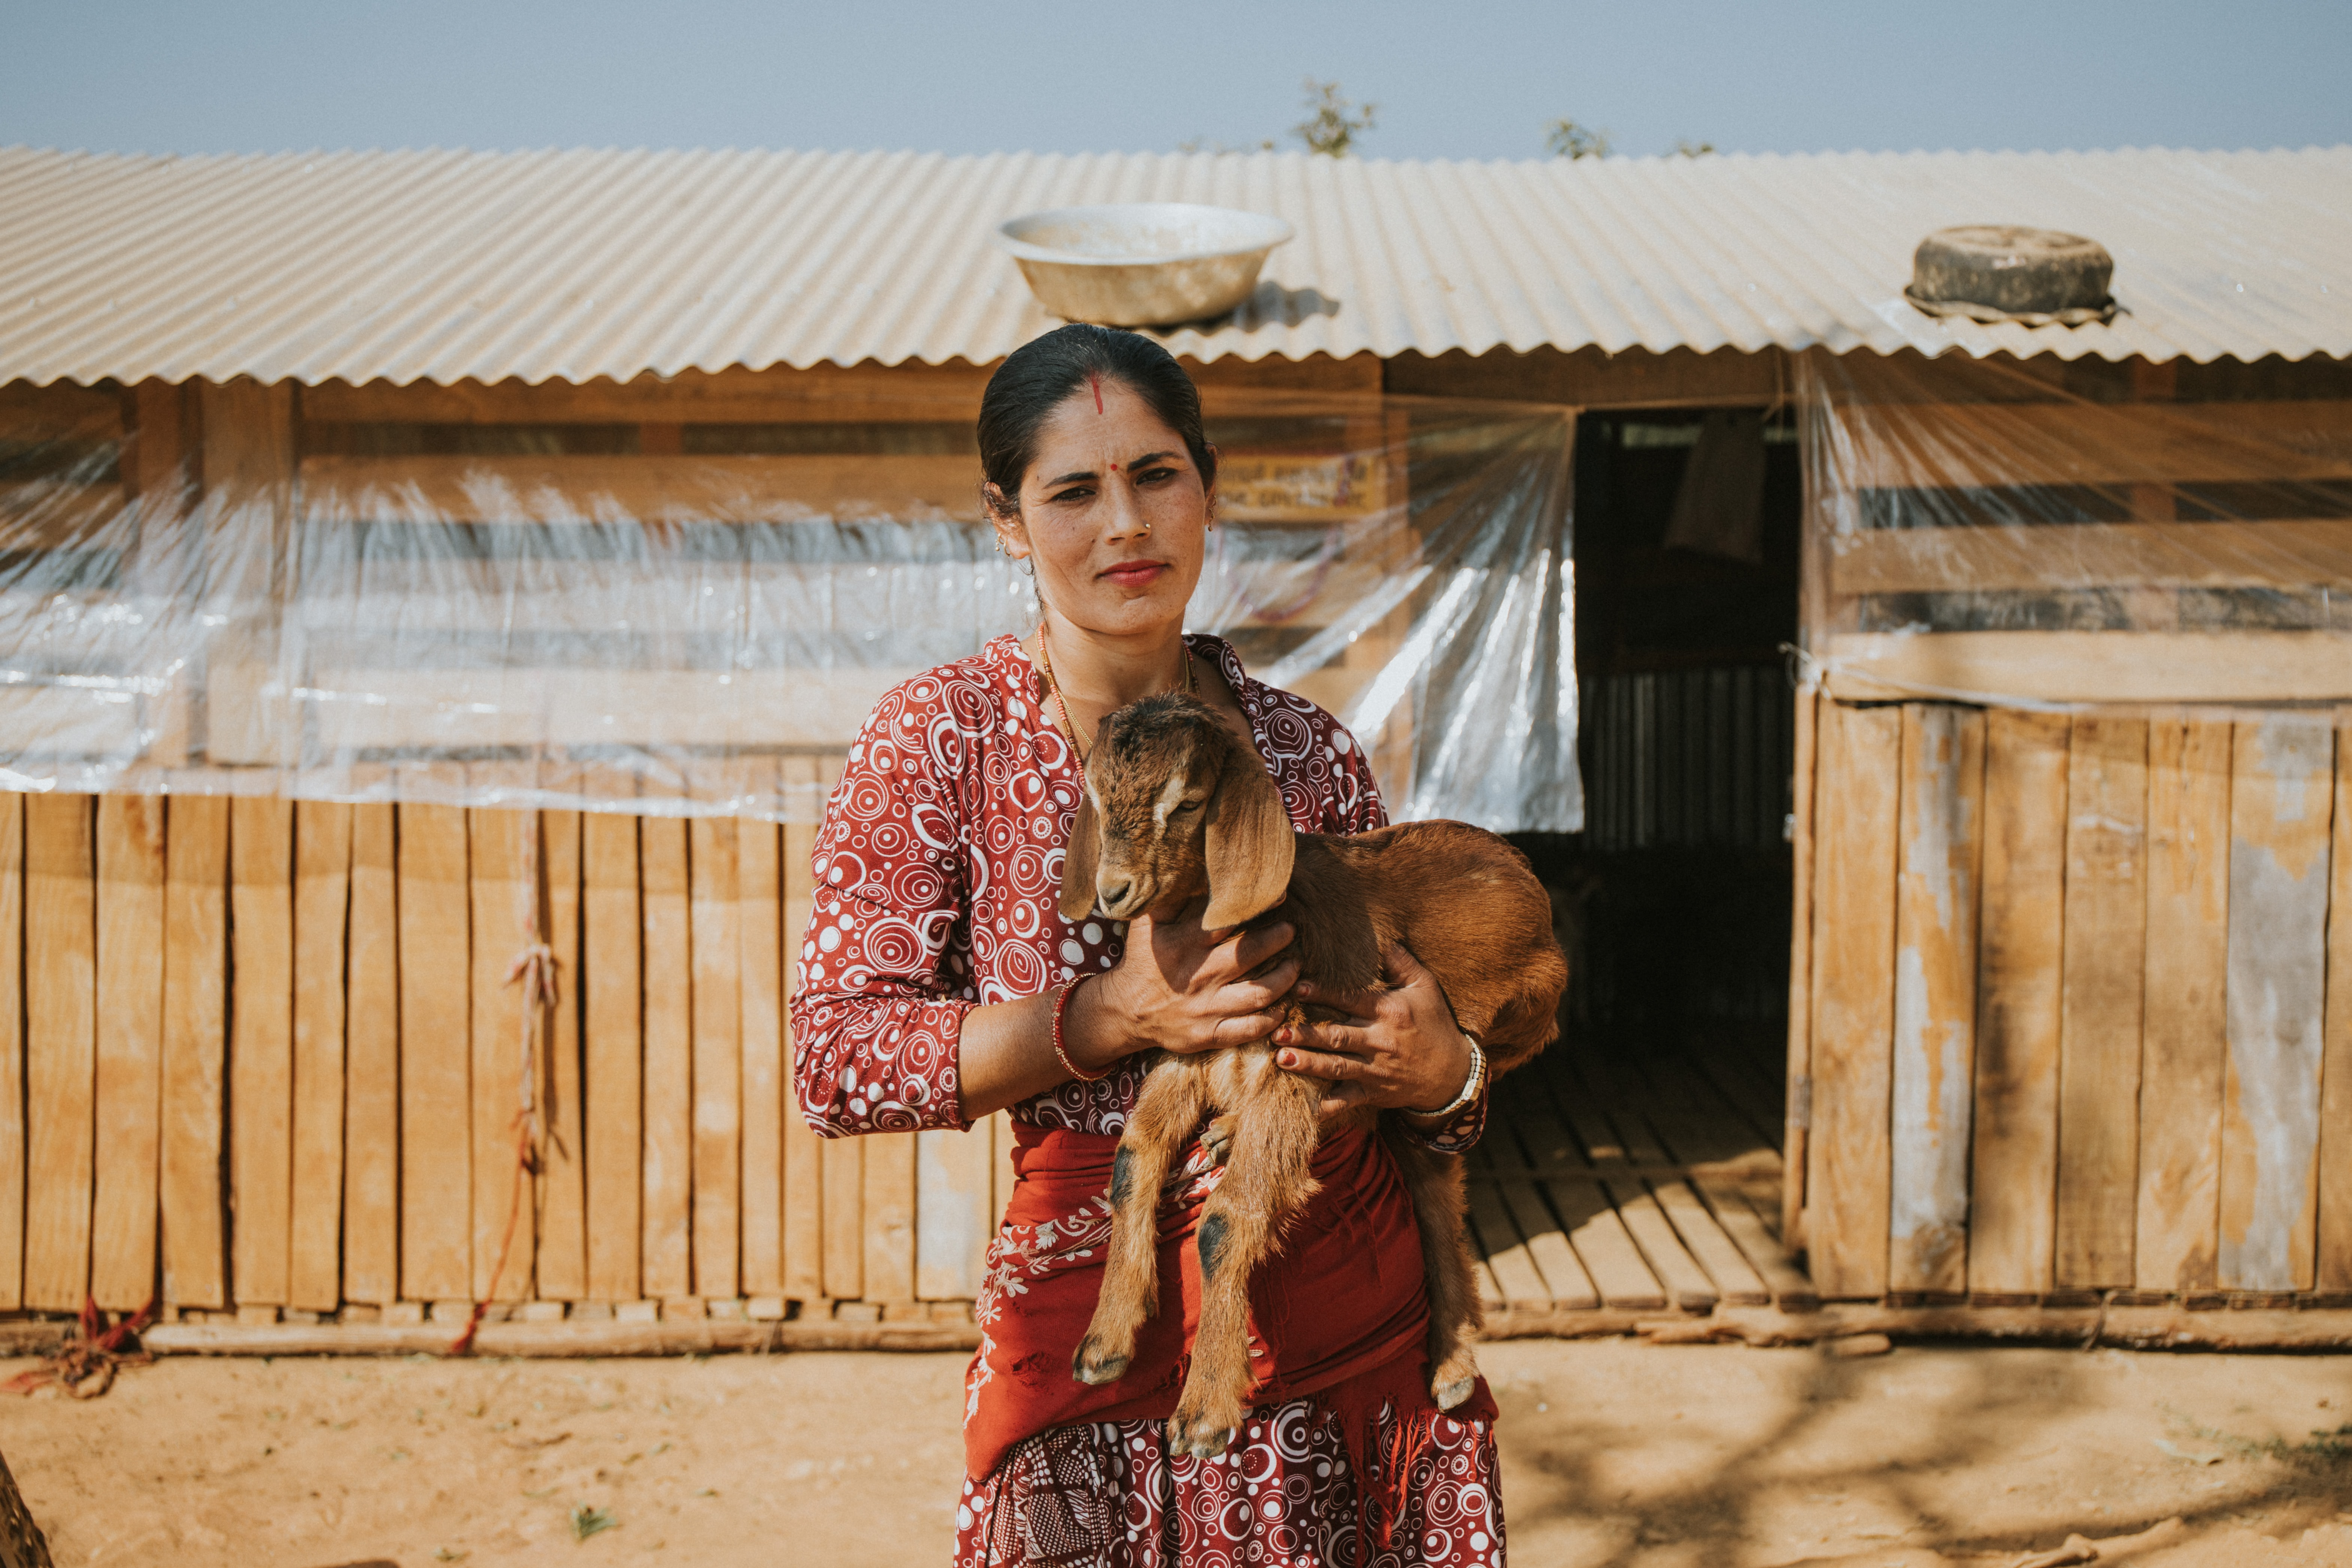 a woman in a red sari carrying a brown goat